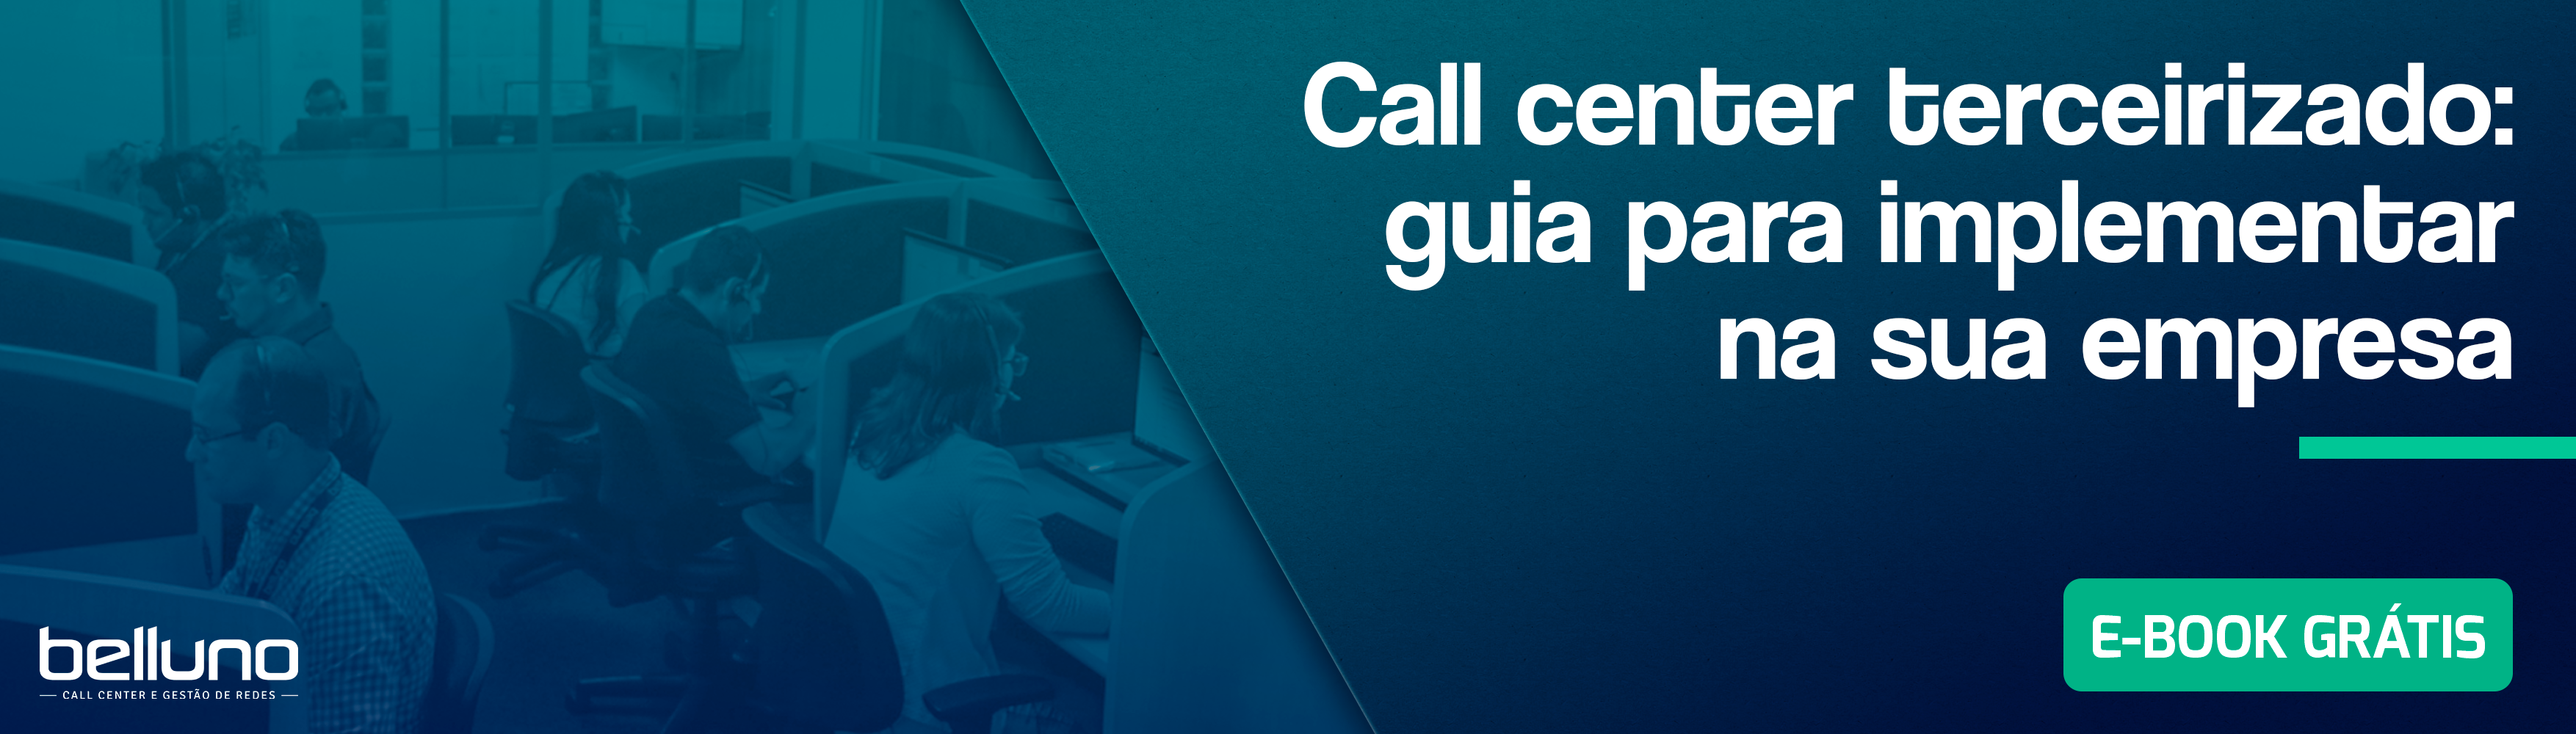 Call center terceirizado para provedor